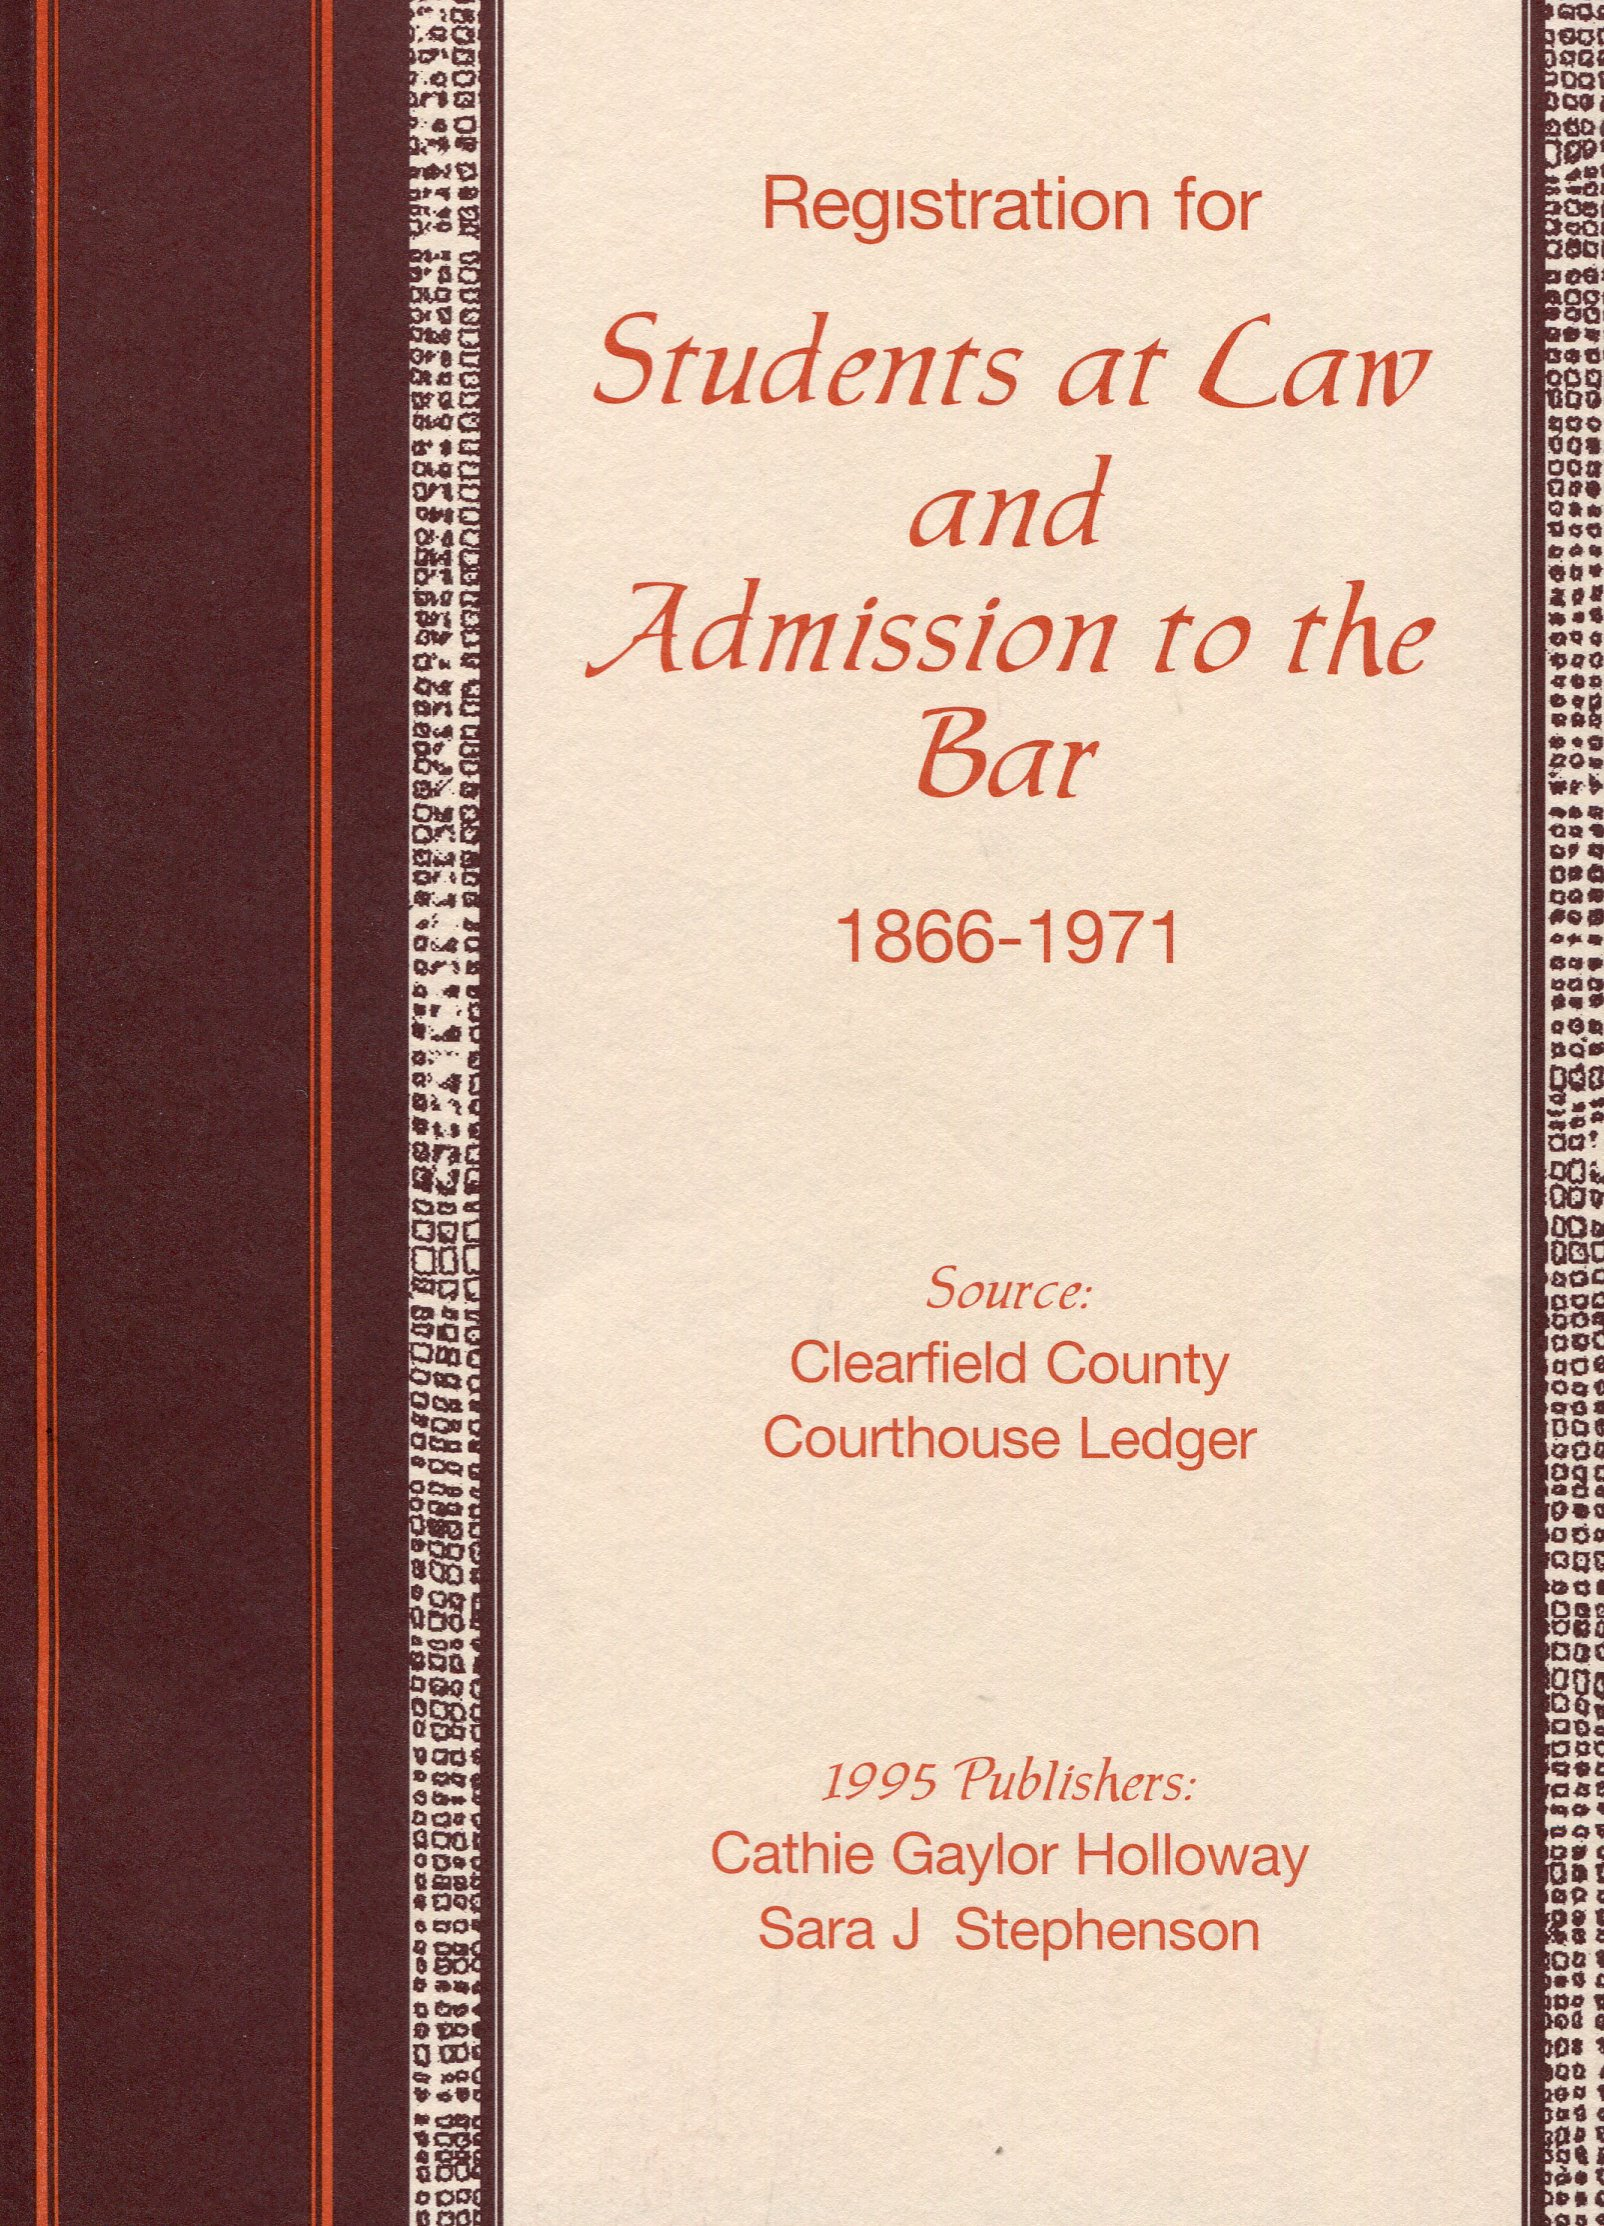 Registration for Students at Law and Admission to the Bar 1866-1971